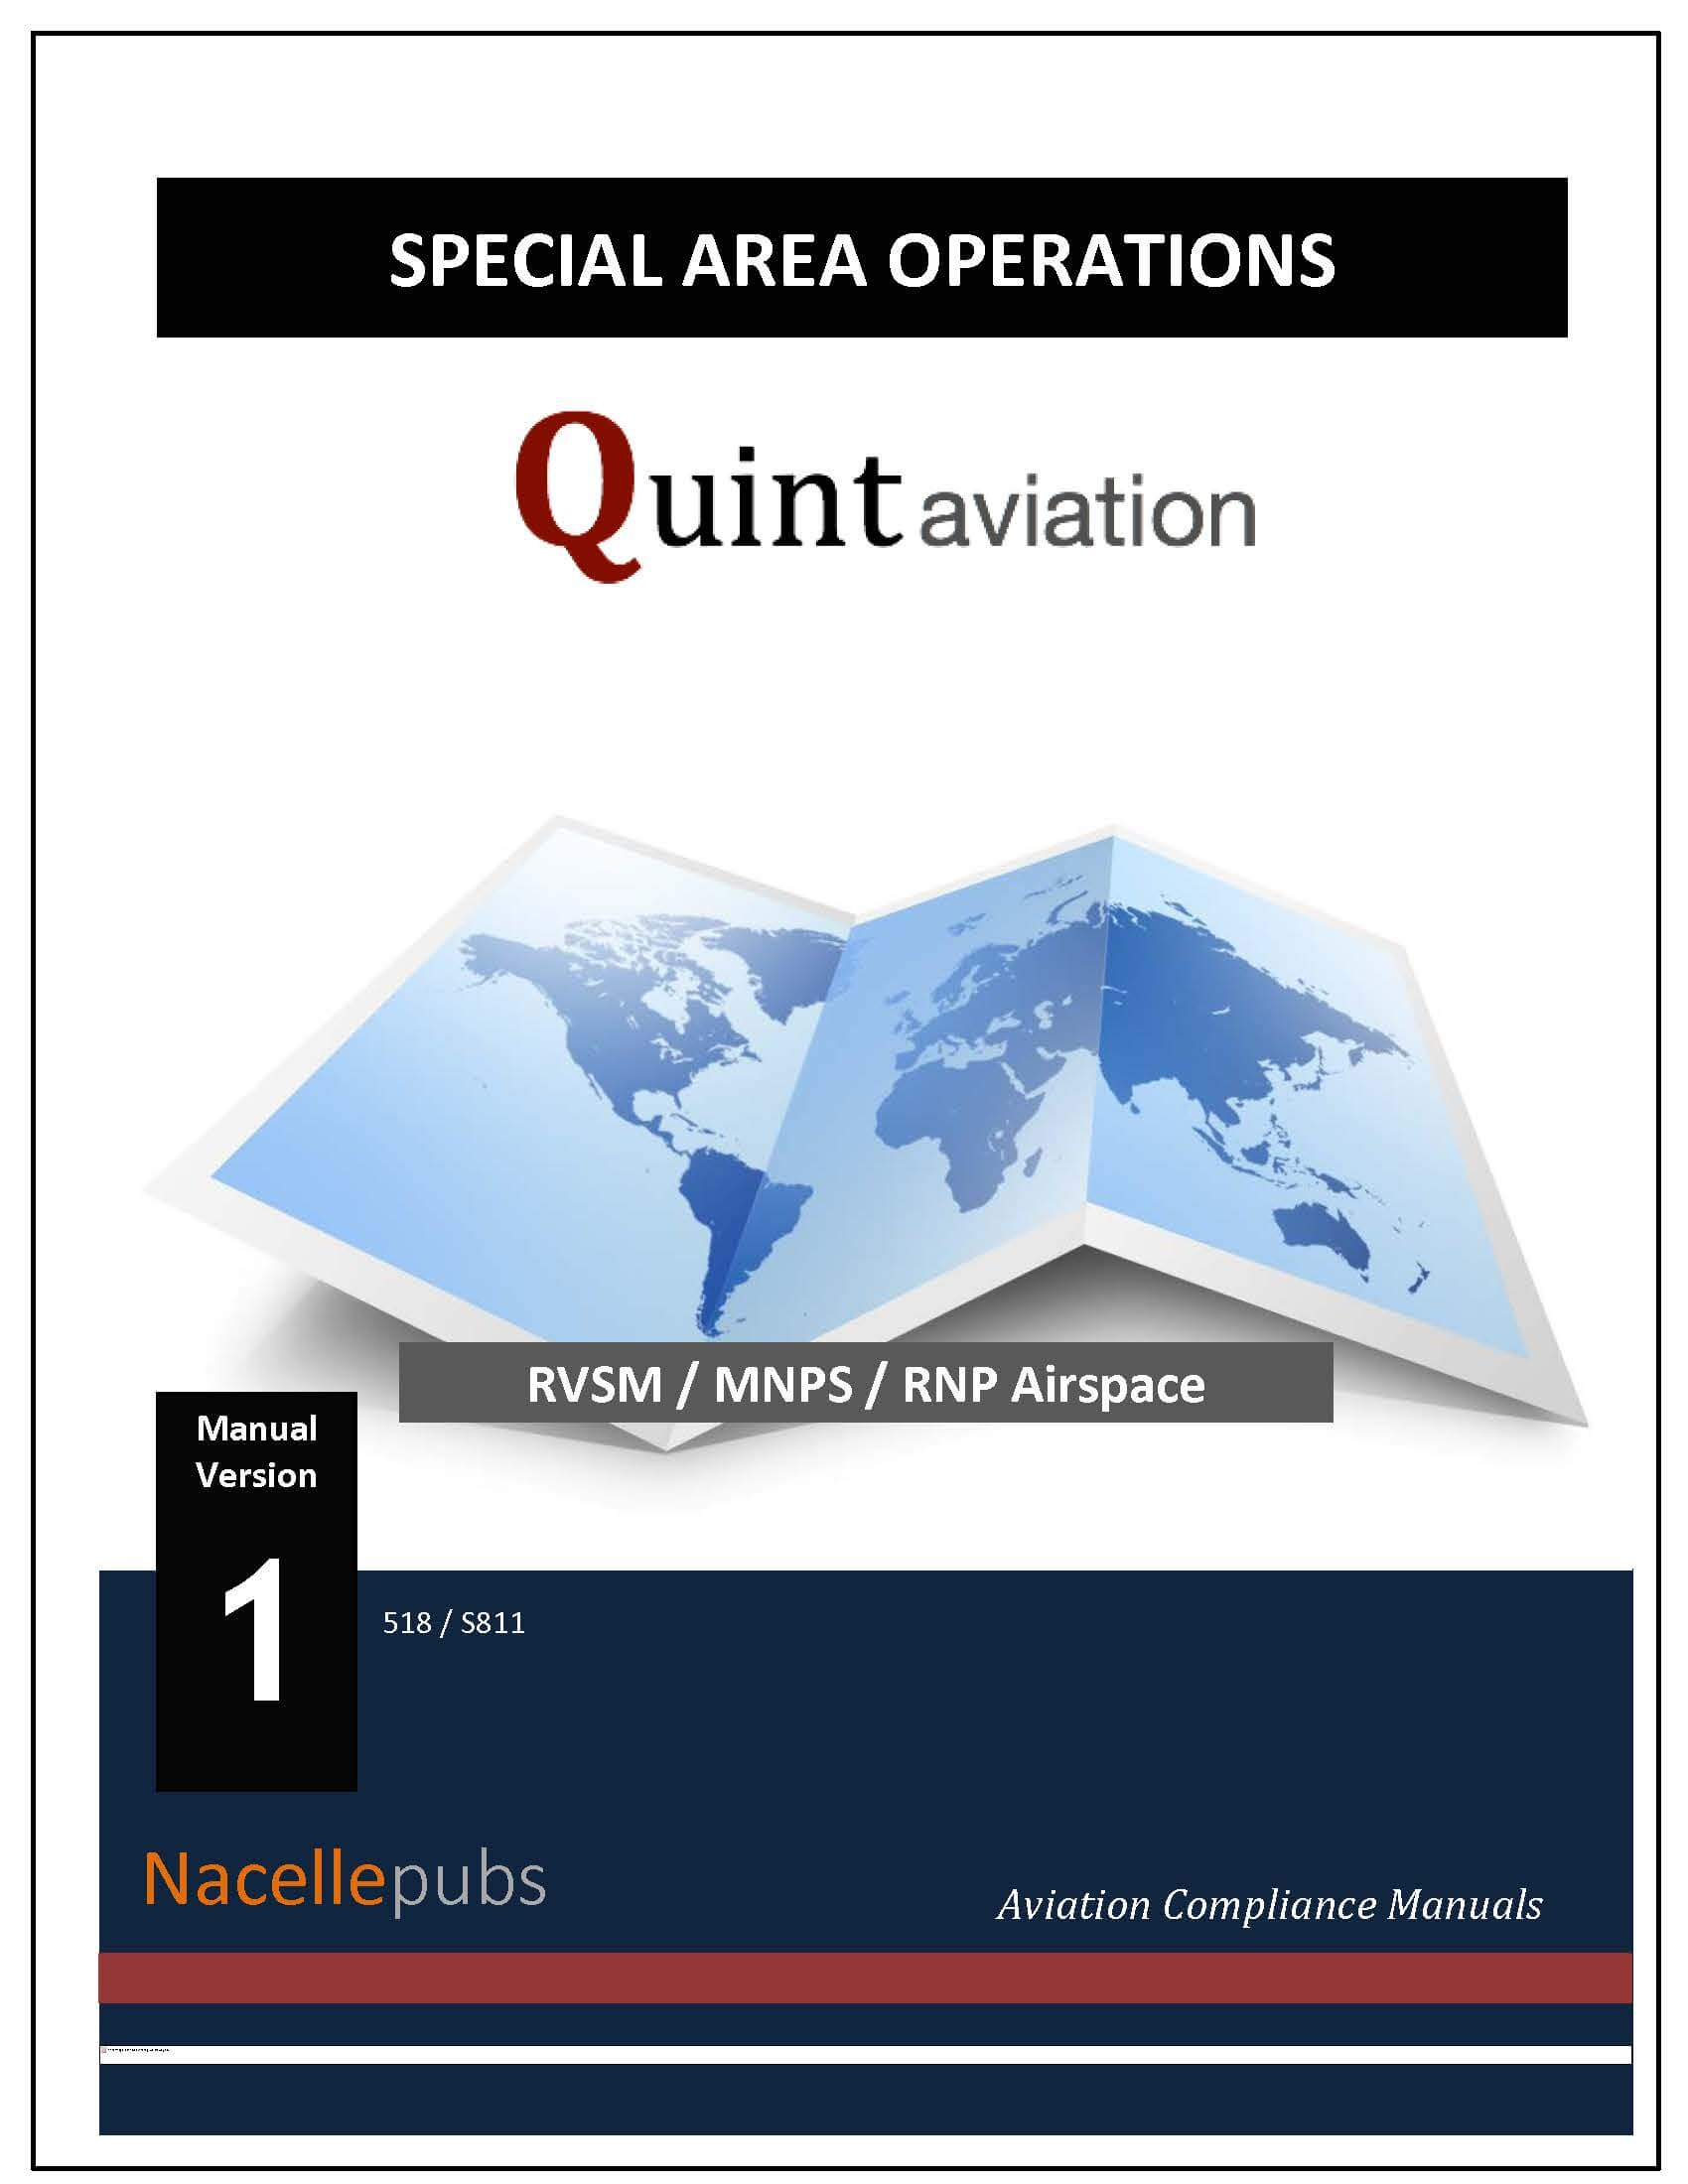 FAA Special Area Operations Manual (SAO) - RVSM, MNPS, WATRS, RNP